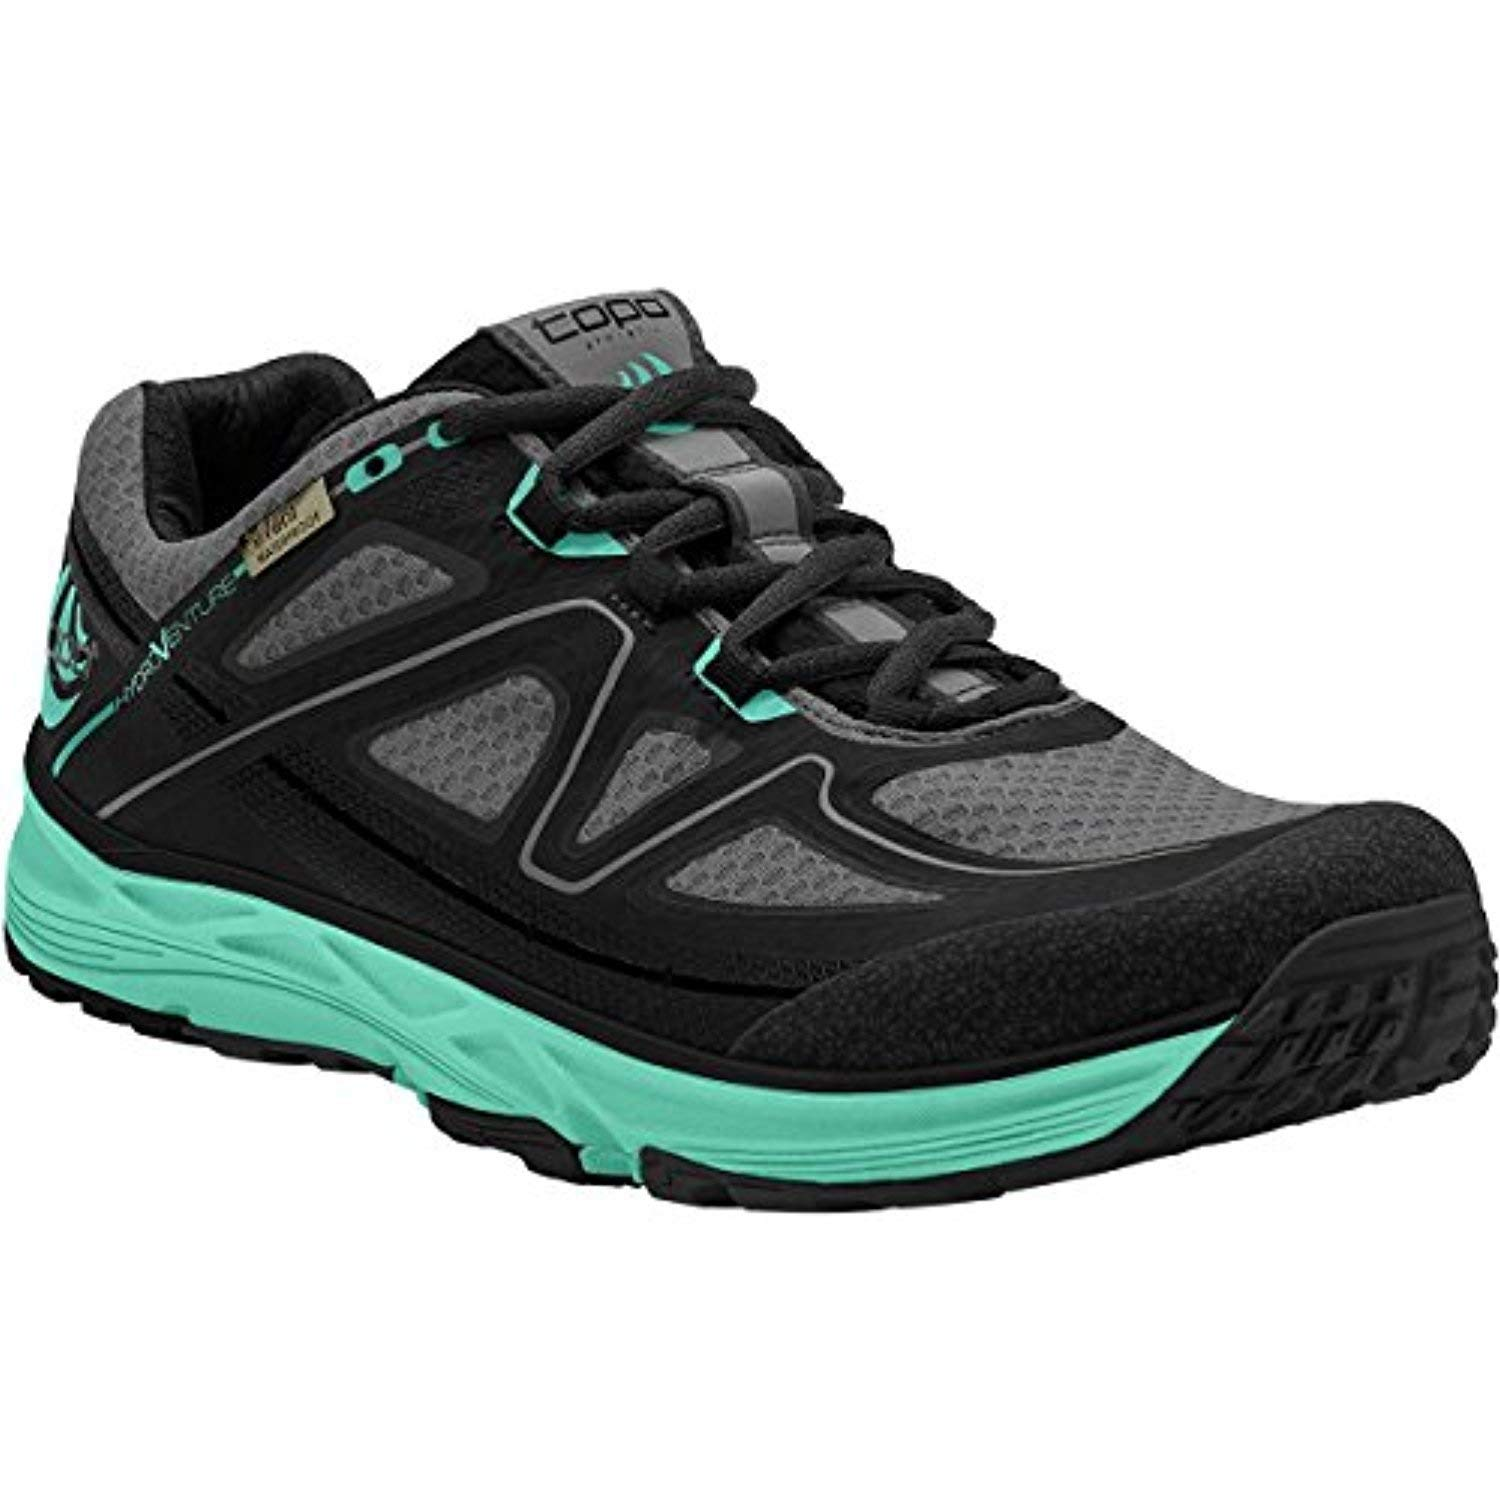 Topo Women's Hydroventure Trail Running Shoes Black/Turquoise 11 & Headband